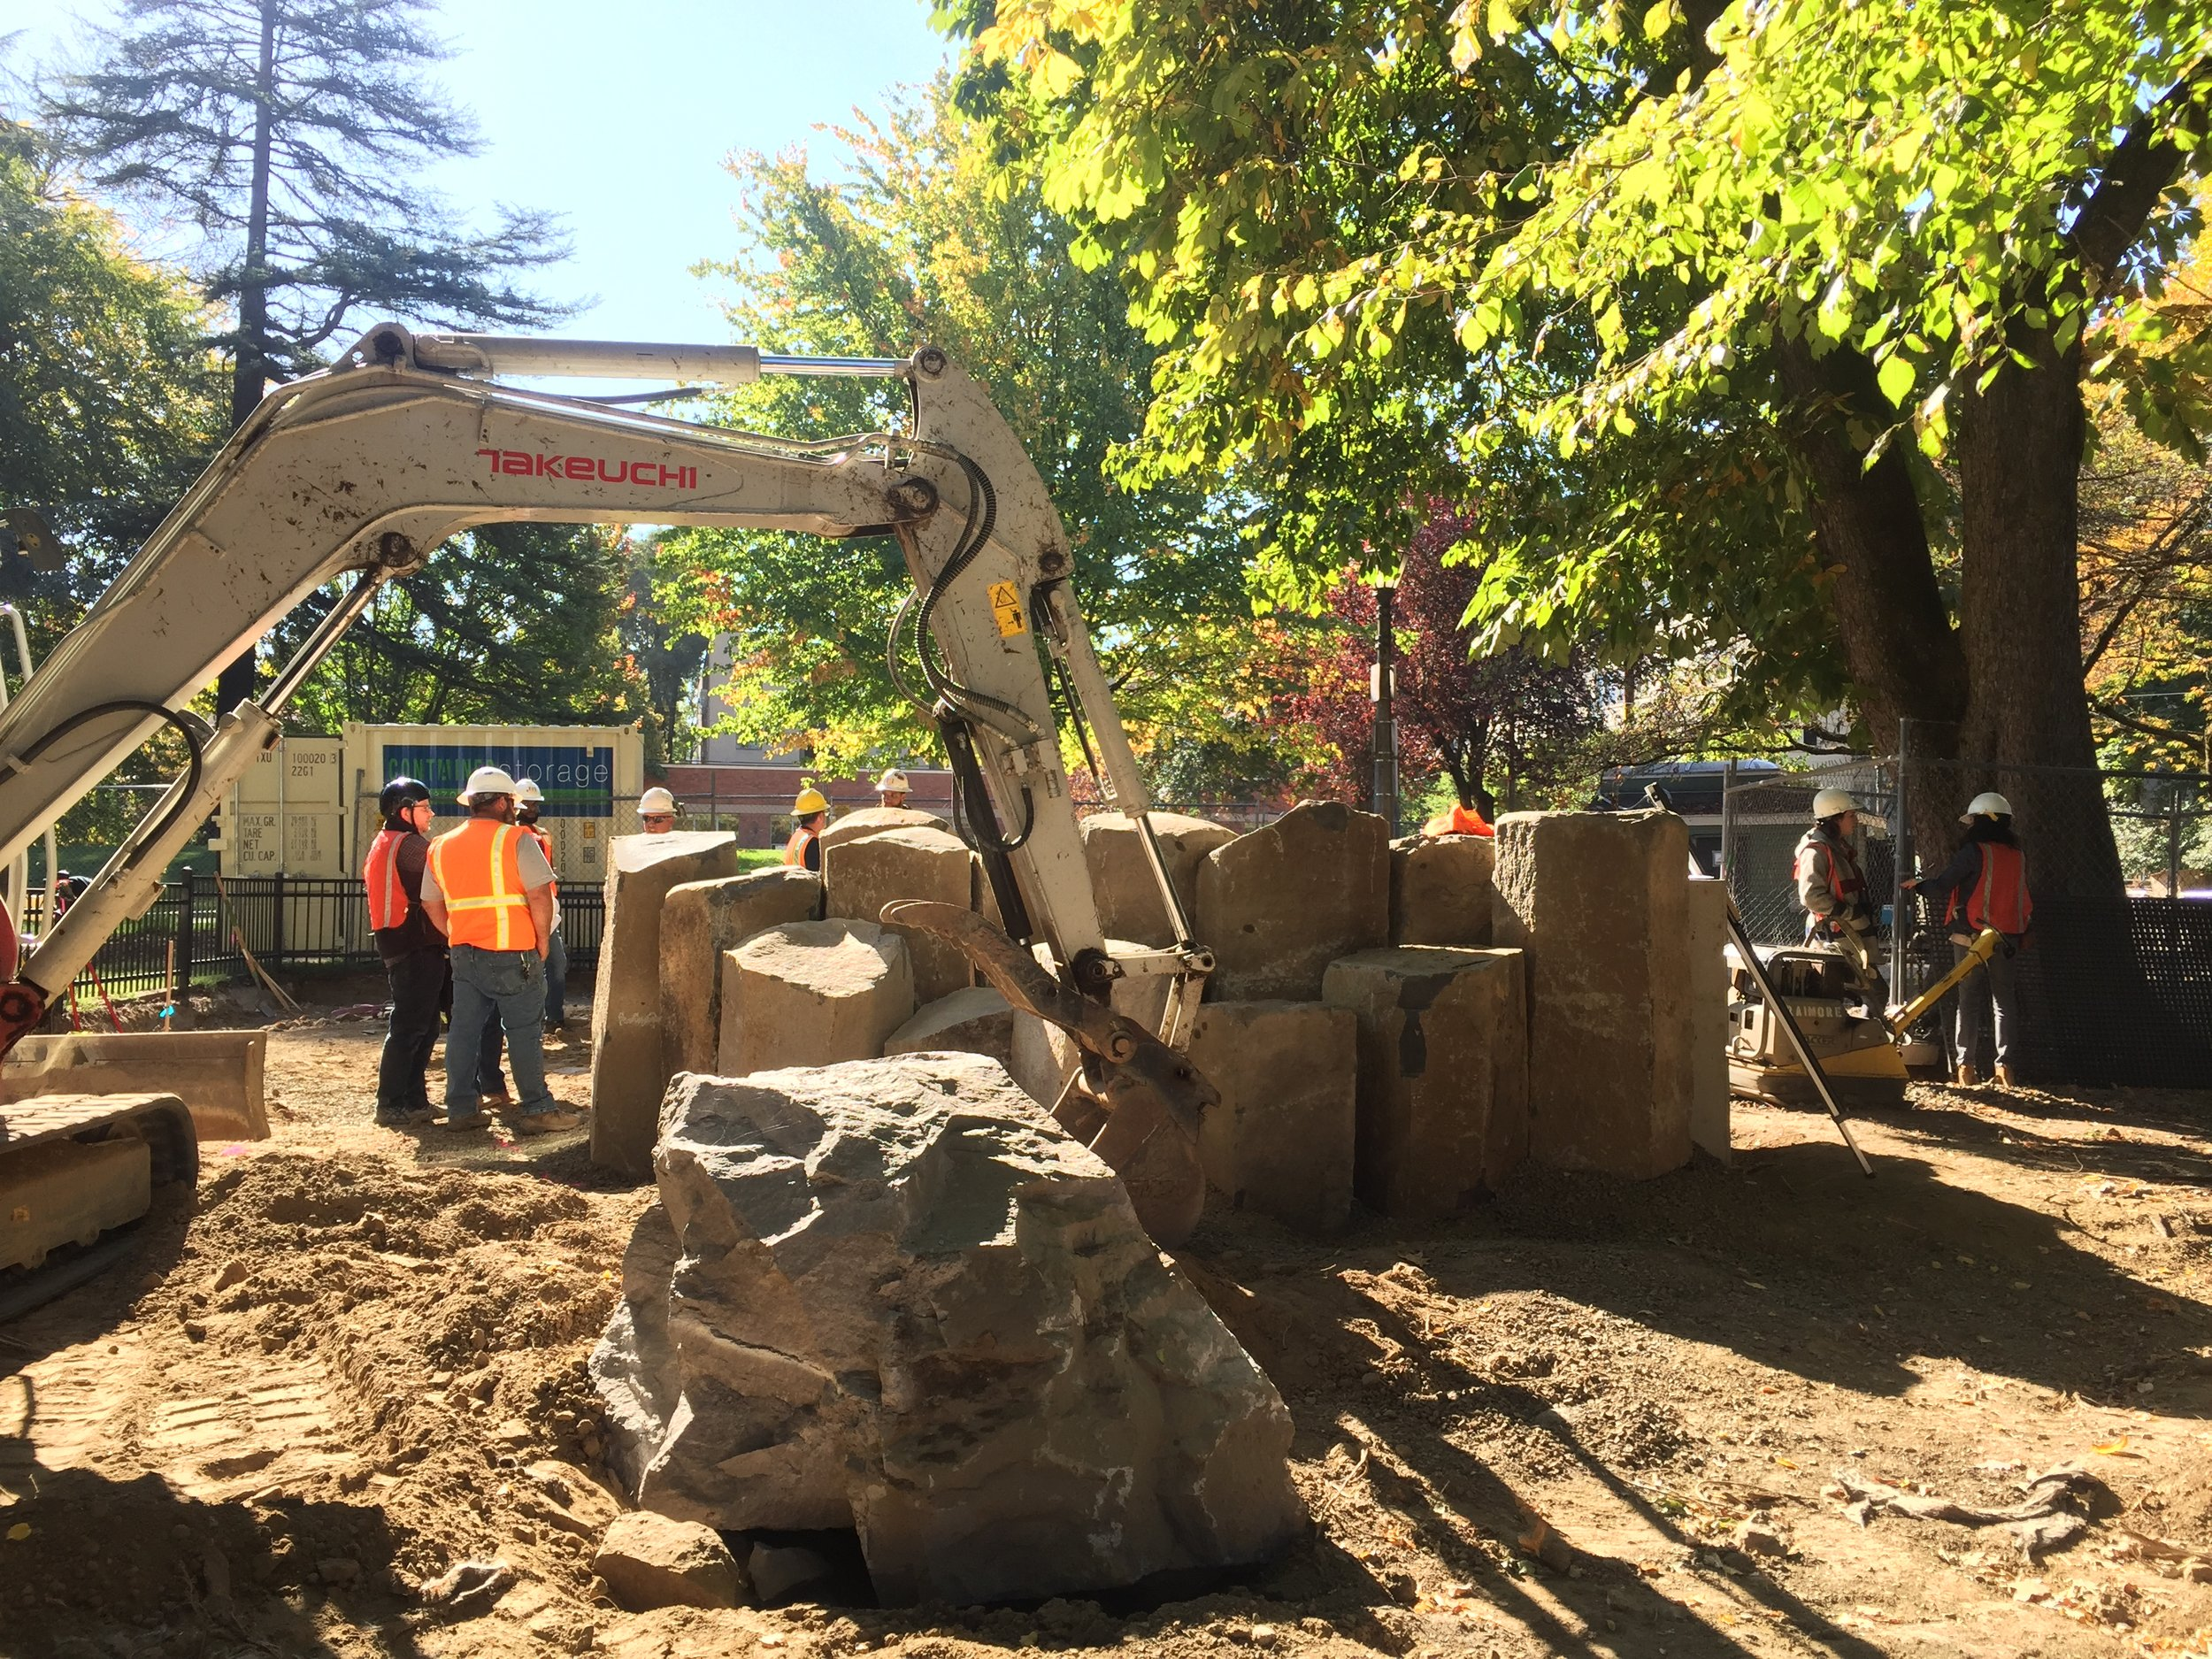 Backhoe Arranging Basalt Columns During Couch Park Construction